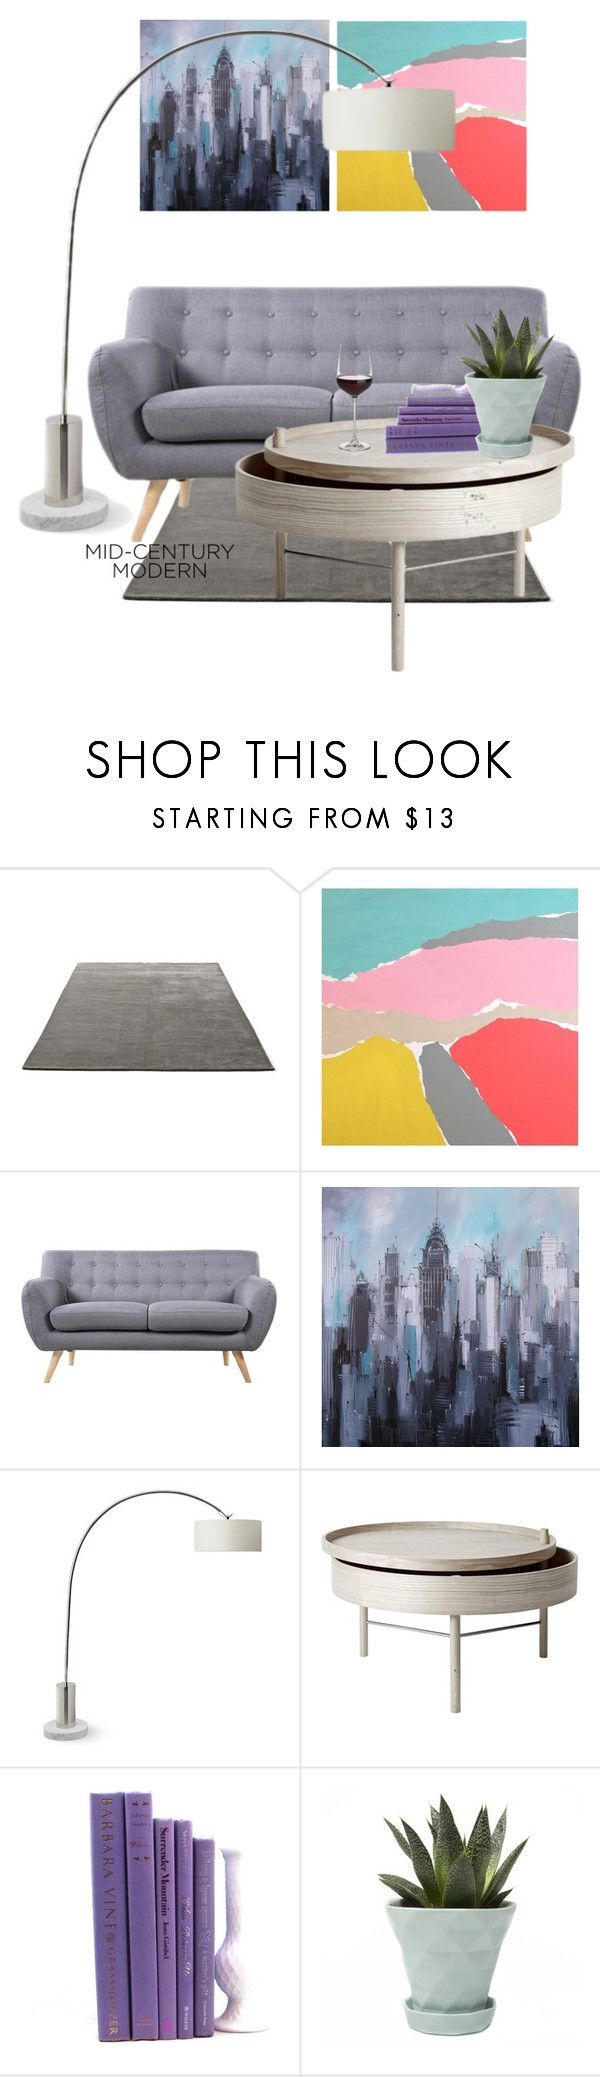 """""""#midcenturymodern"""" by jmf-image ❤ liked on Polyvore featuring interior, interiors, interior design, home, home decor, interior decorating, &Tradition, Alan Fears, Madison and Williams-Sonoma"""